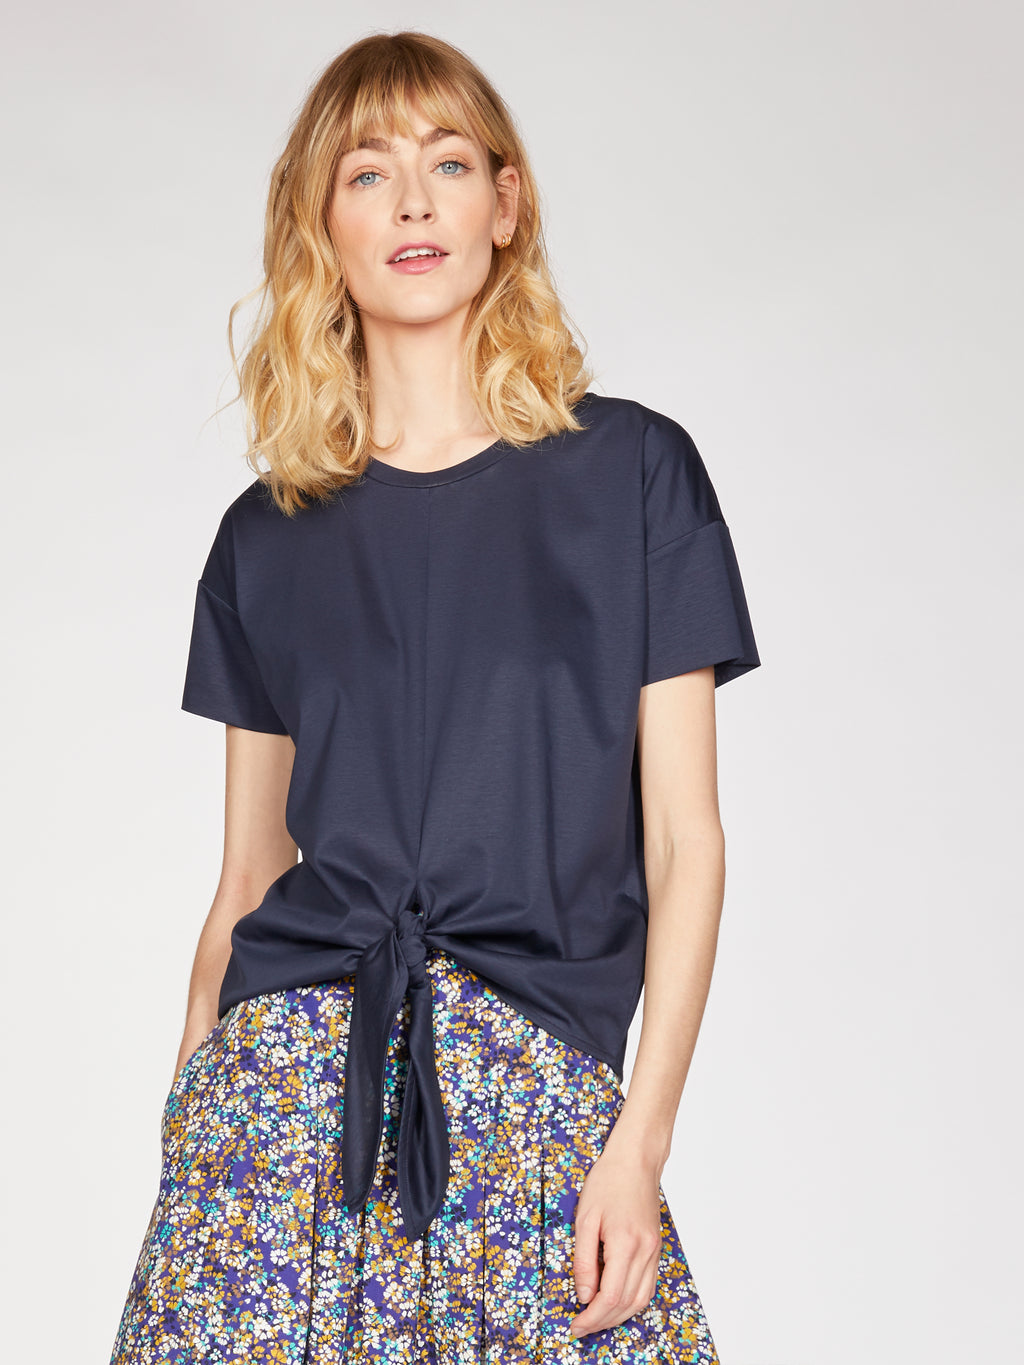 top-stephanie-col-rond-navy-noeud-taille-coton-bio-tencel-thought-clothing